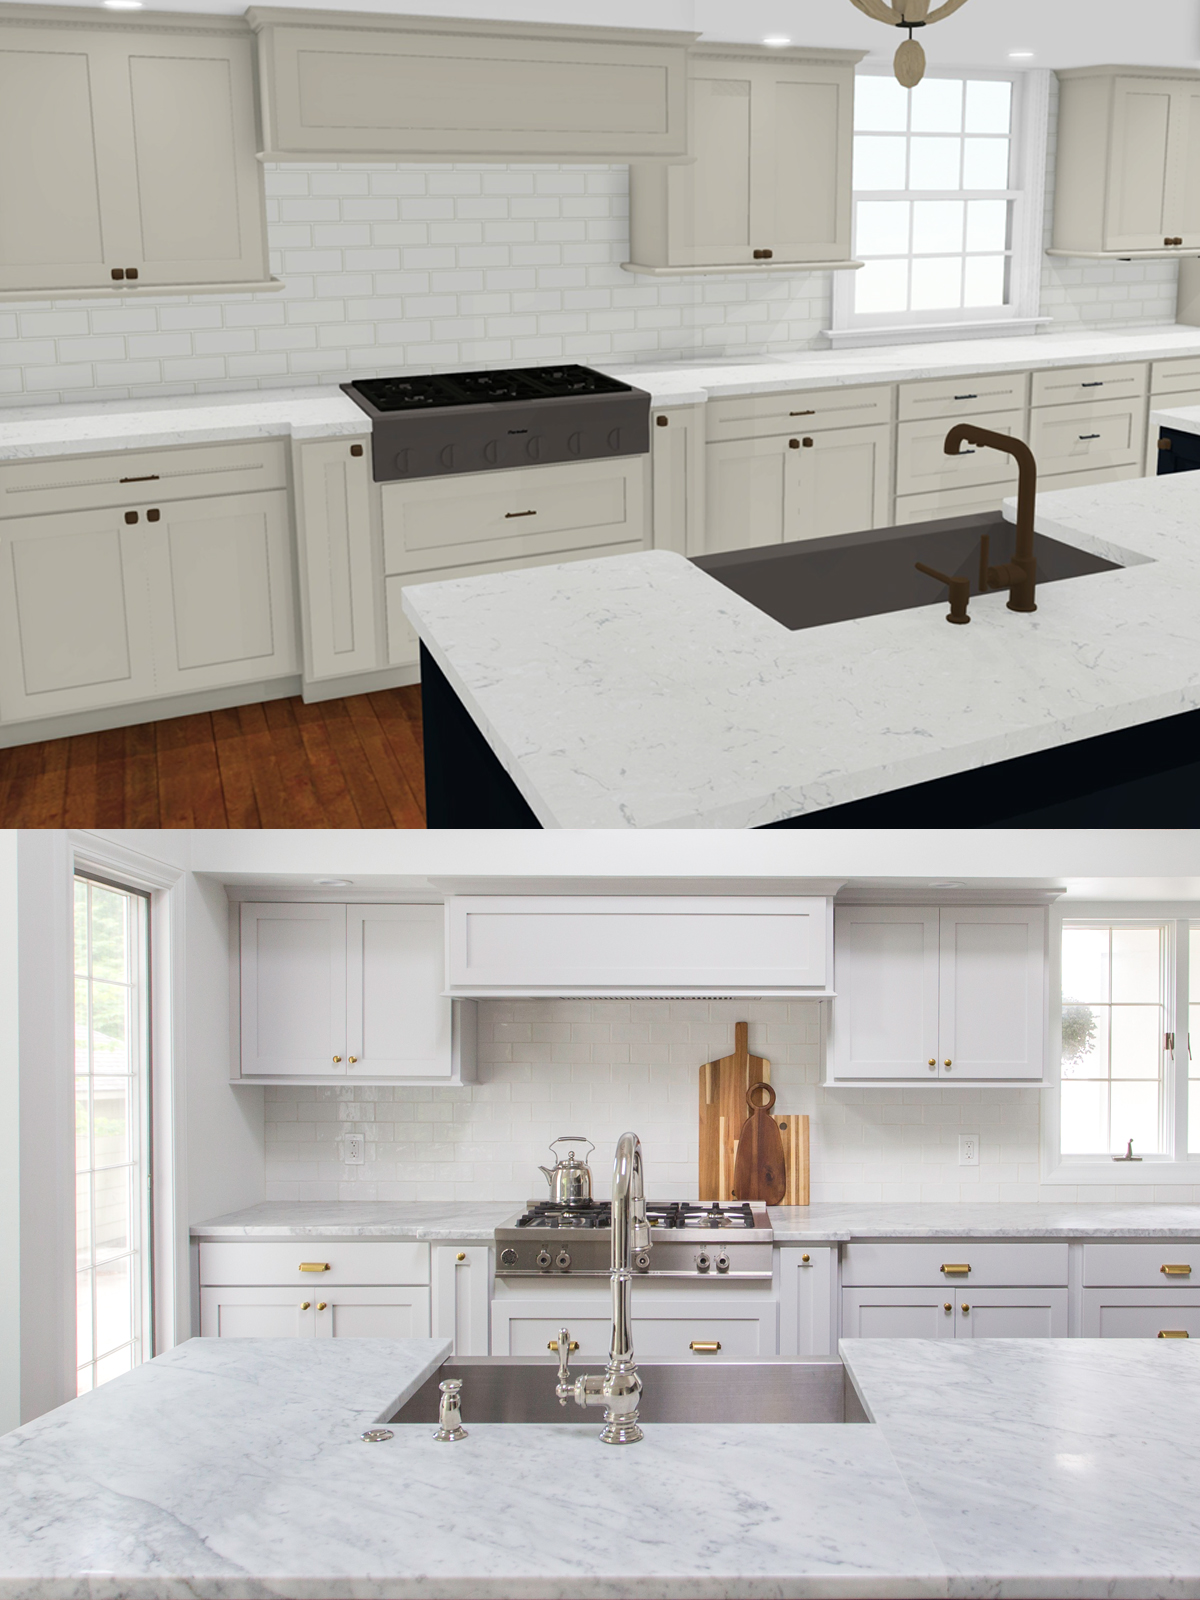 rendering compared to kitchen after scovell remodel